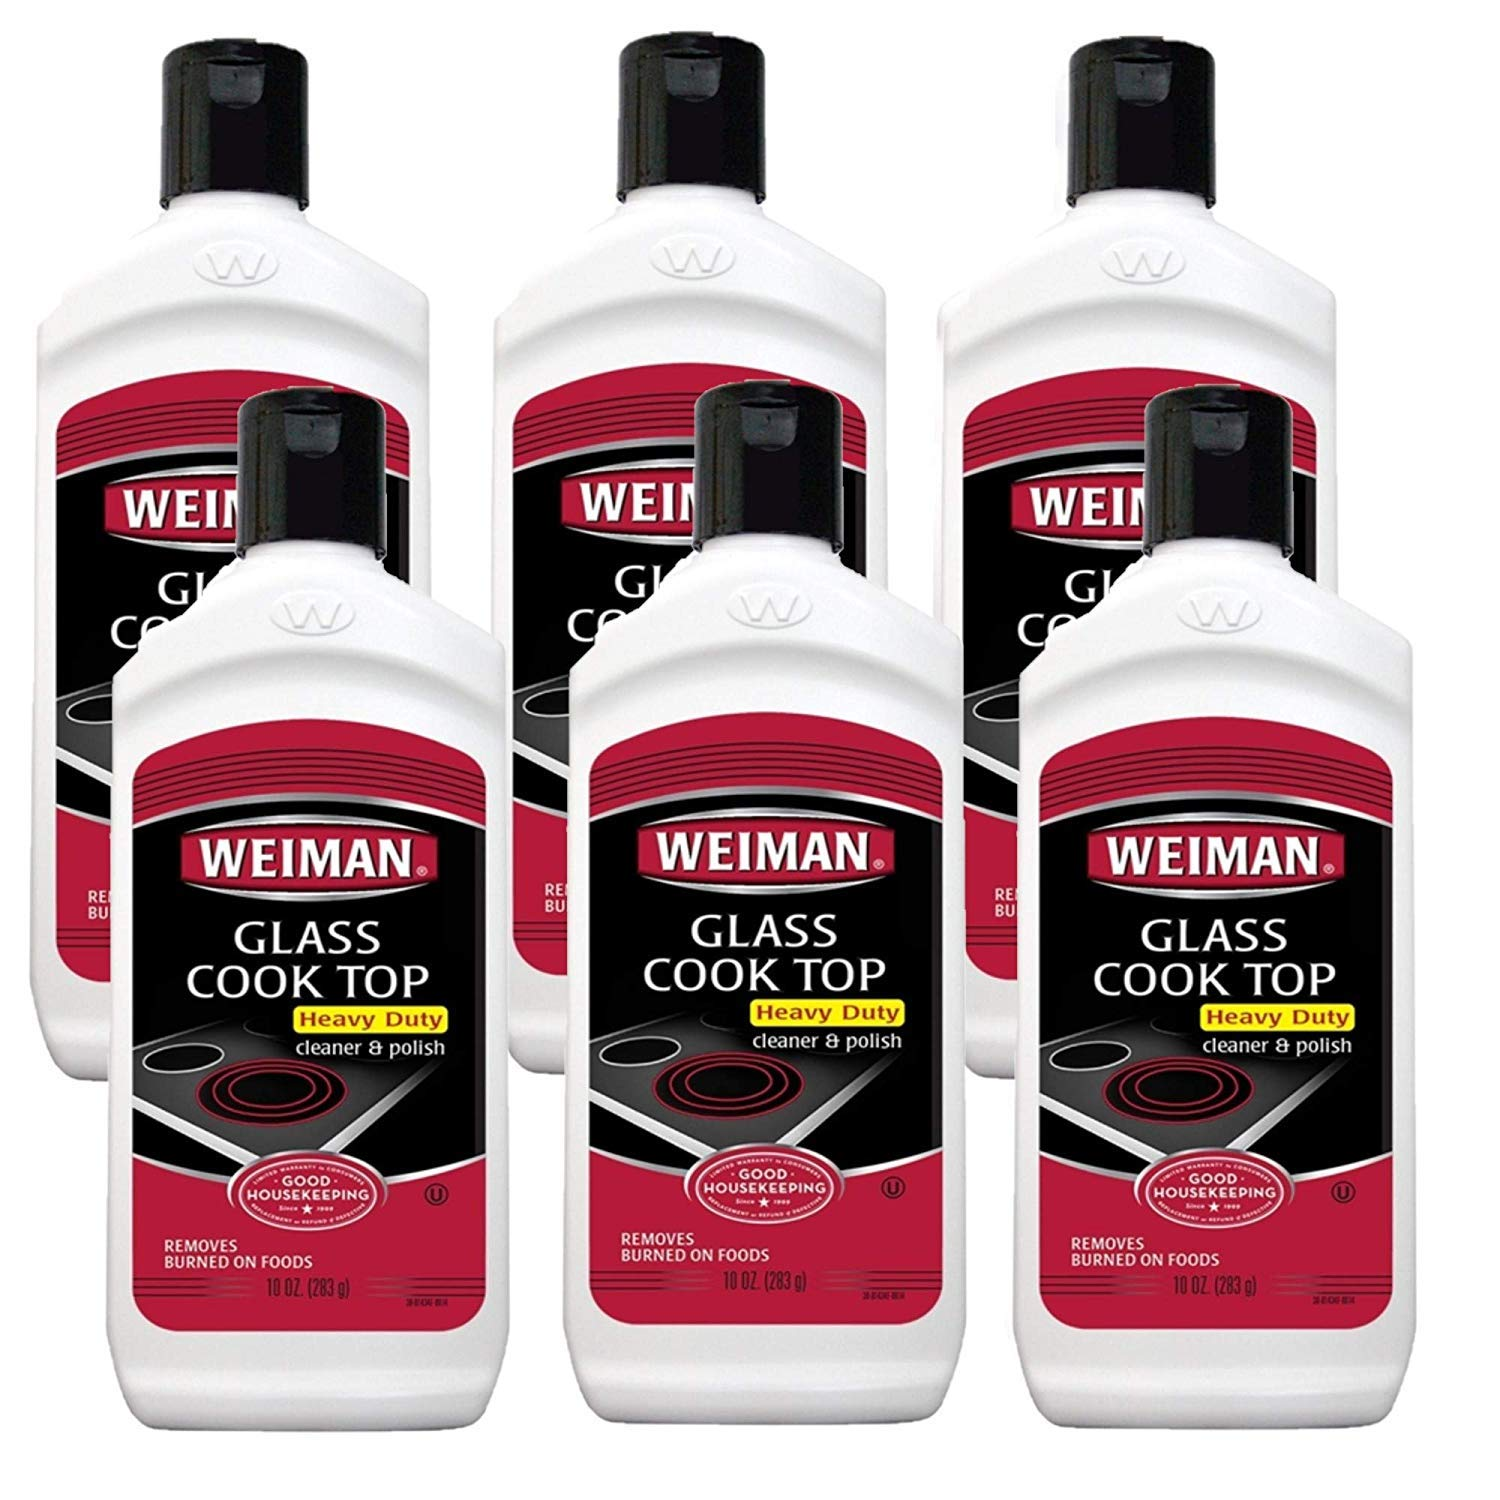 Weiman Cooktop Cleaner and Polish 10 Ounce (Pack of 6) by Weiman